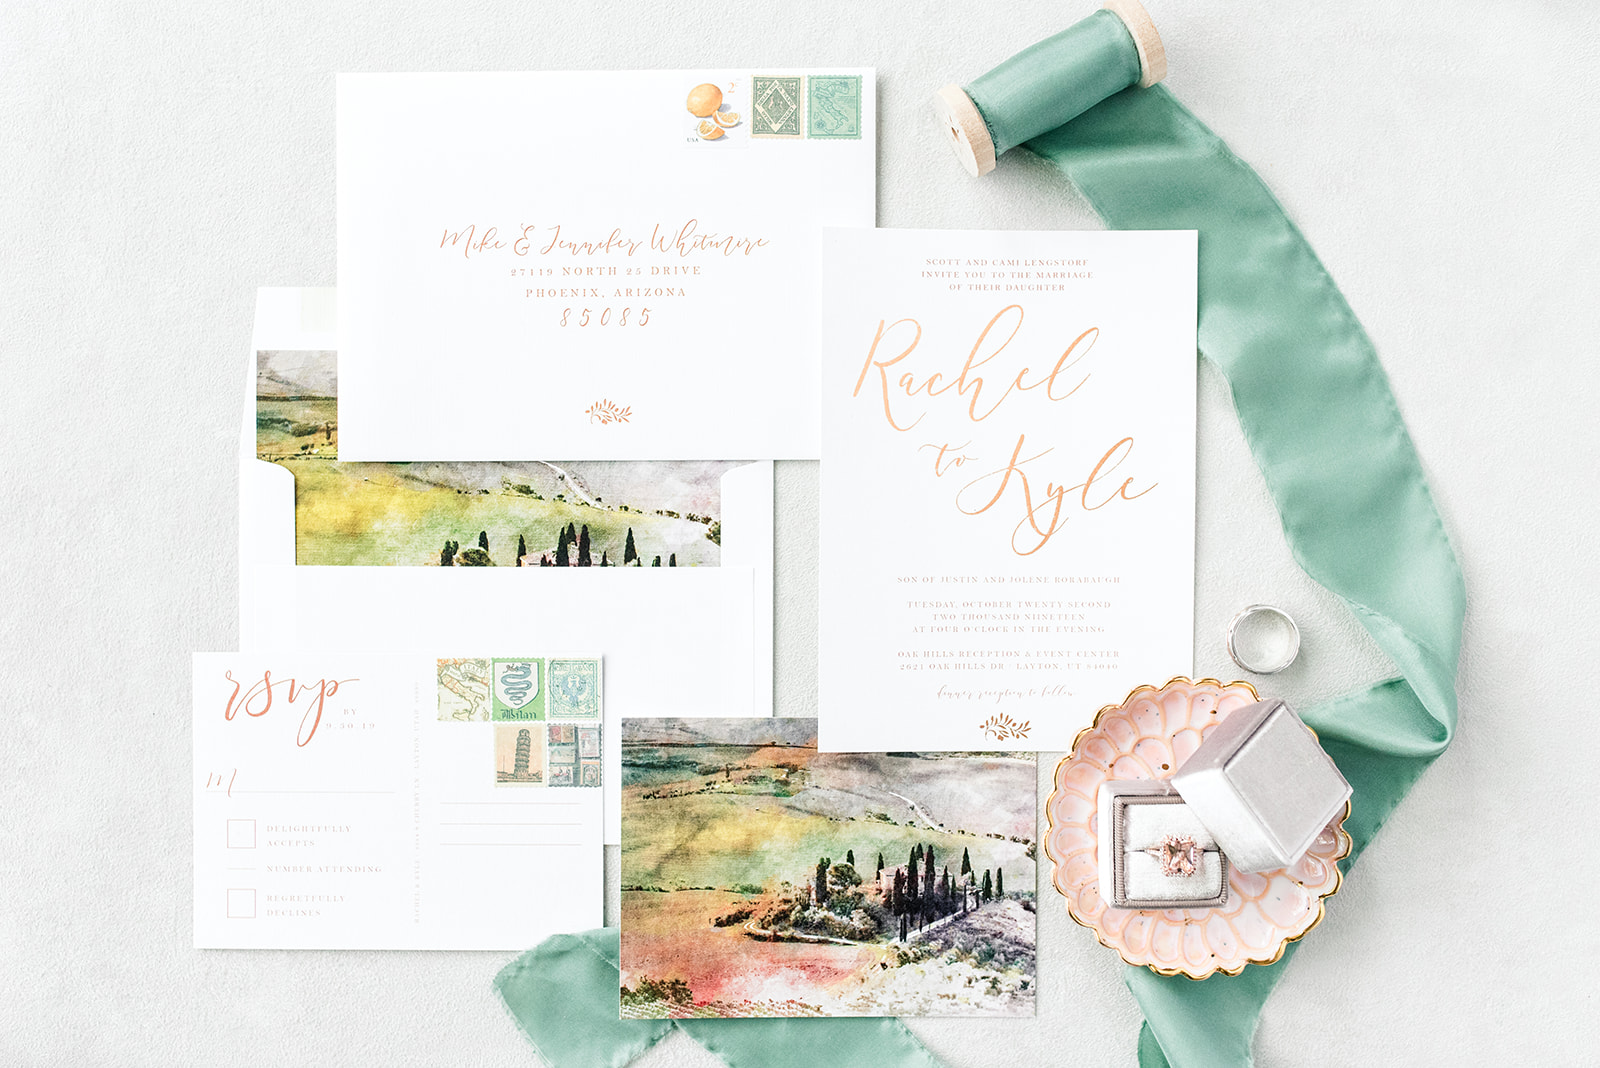 A Taste of Italy Inspired Wedding